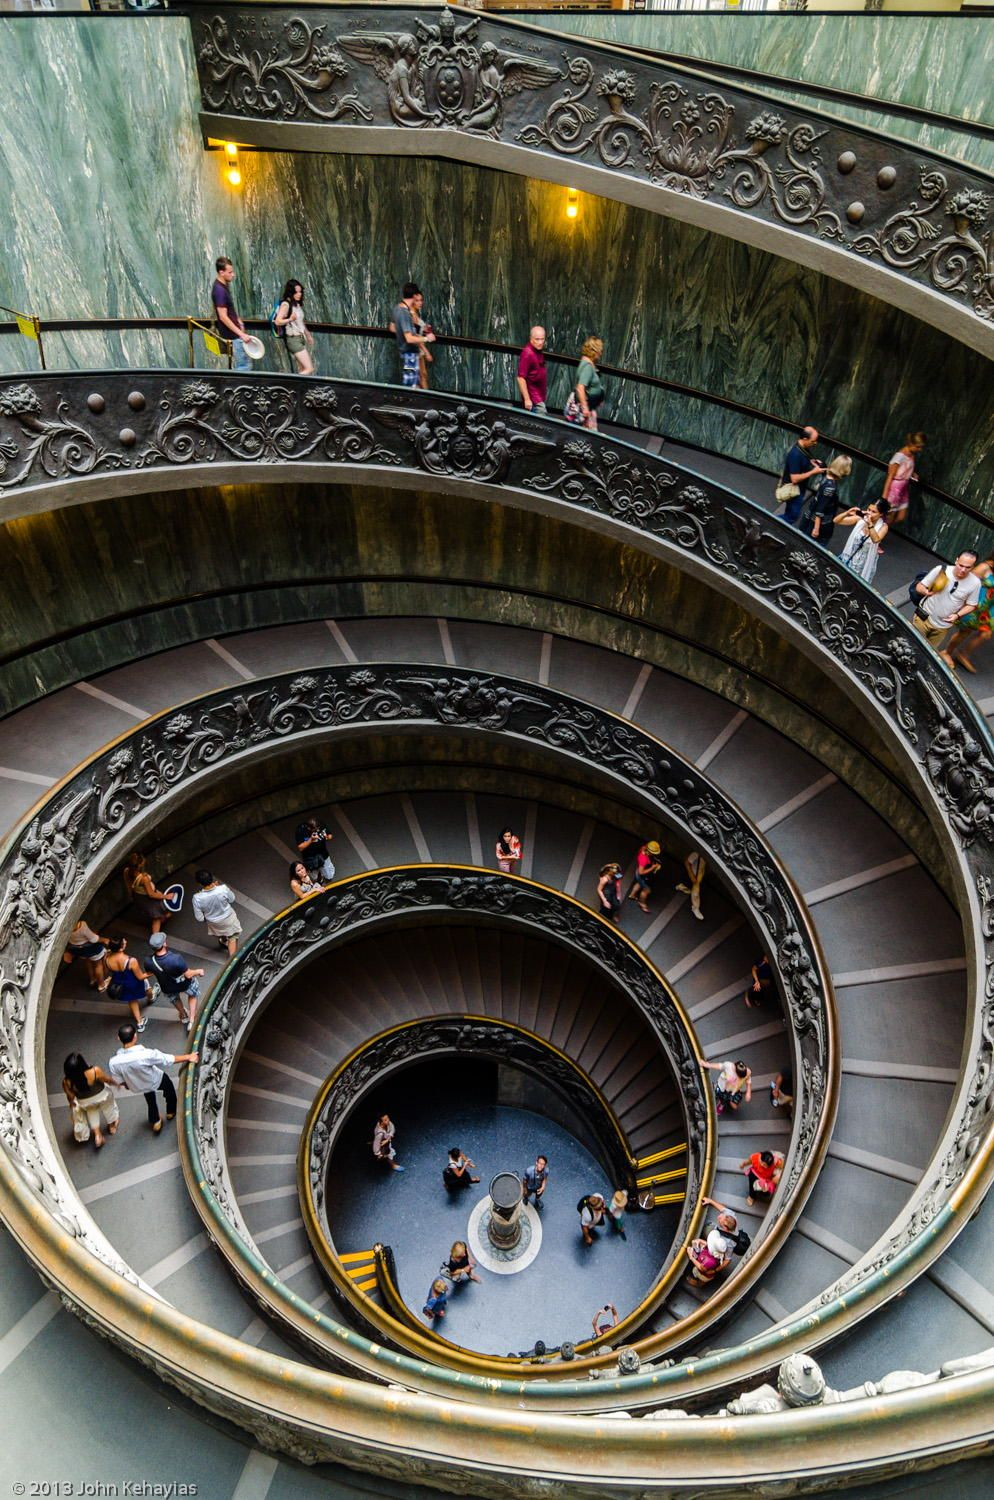 The Famous Double Spiral Staircase In The Vatican Museums Rome